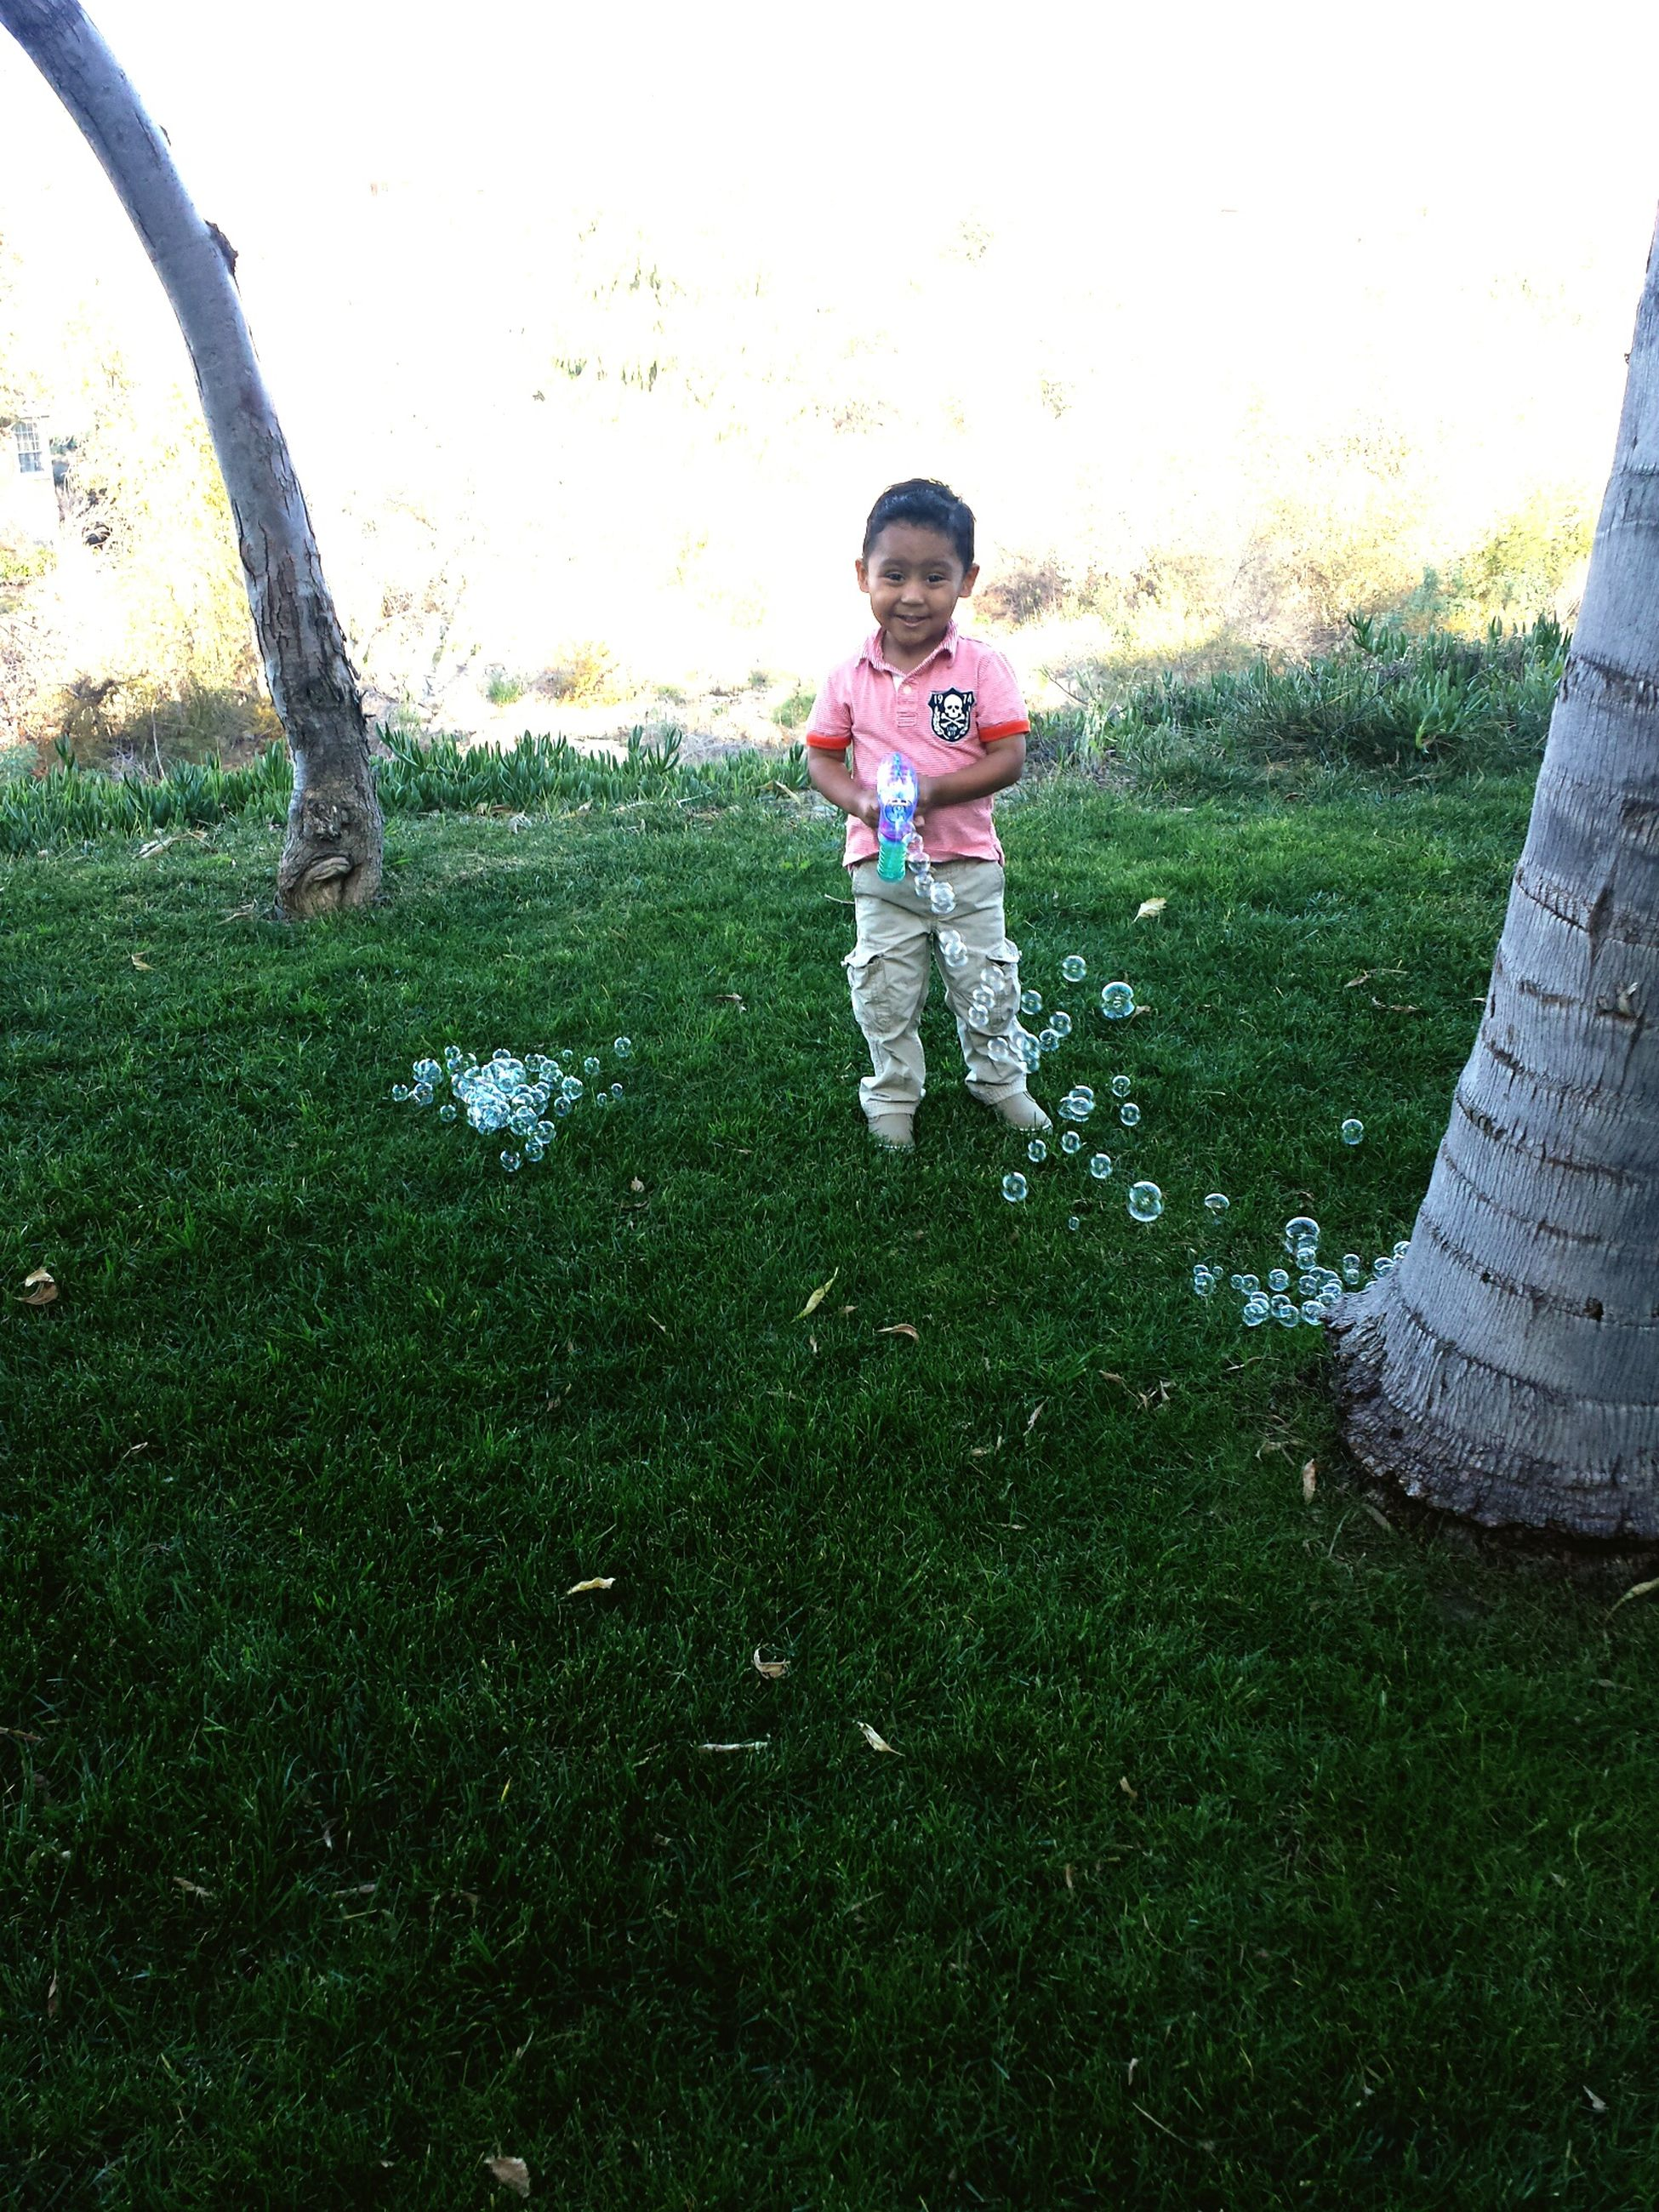 childhood, elementary age, grass, full length, boys, lifestyles, casual clothing, person, leisure activity, girls, innocence, cute, park - man made space, field, standing, grassy, smiling, playful